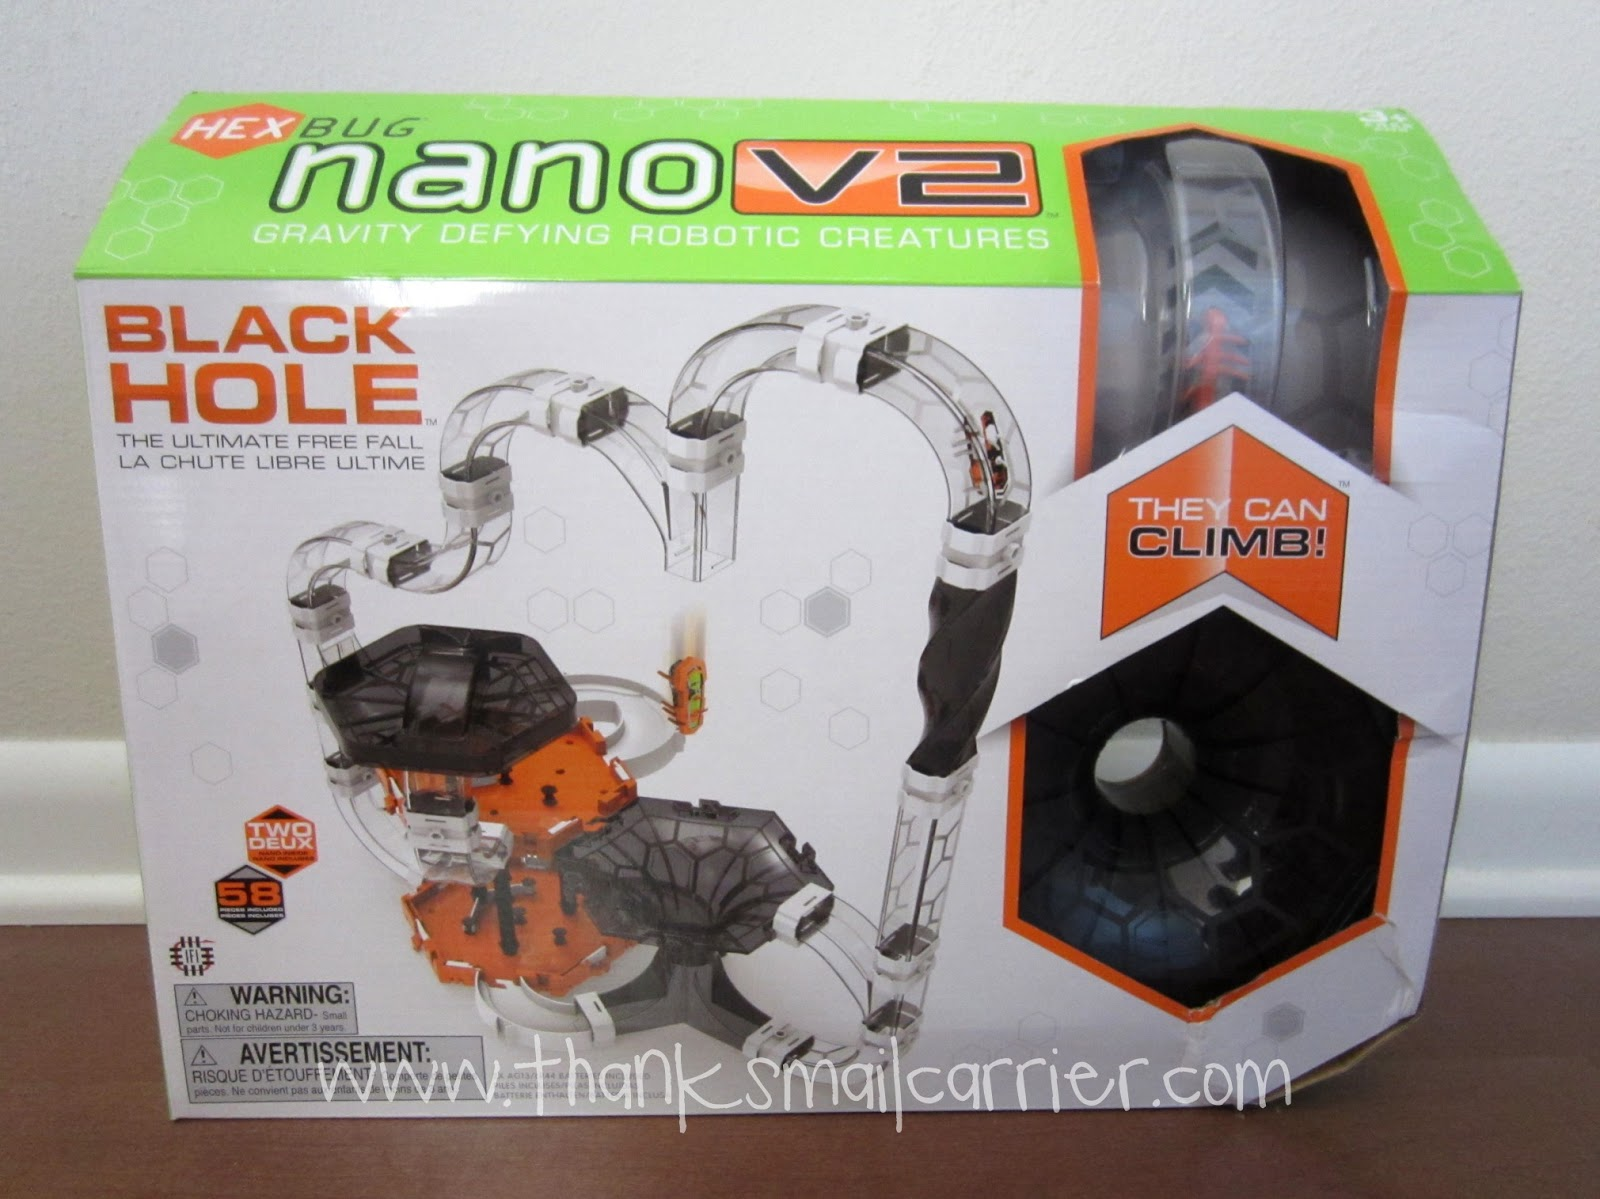 HEXBUG Nano V2 Black Hole set